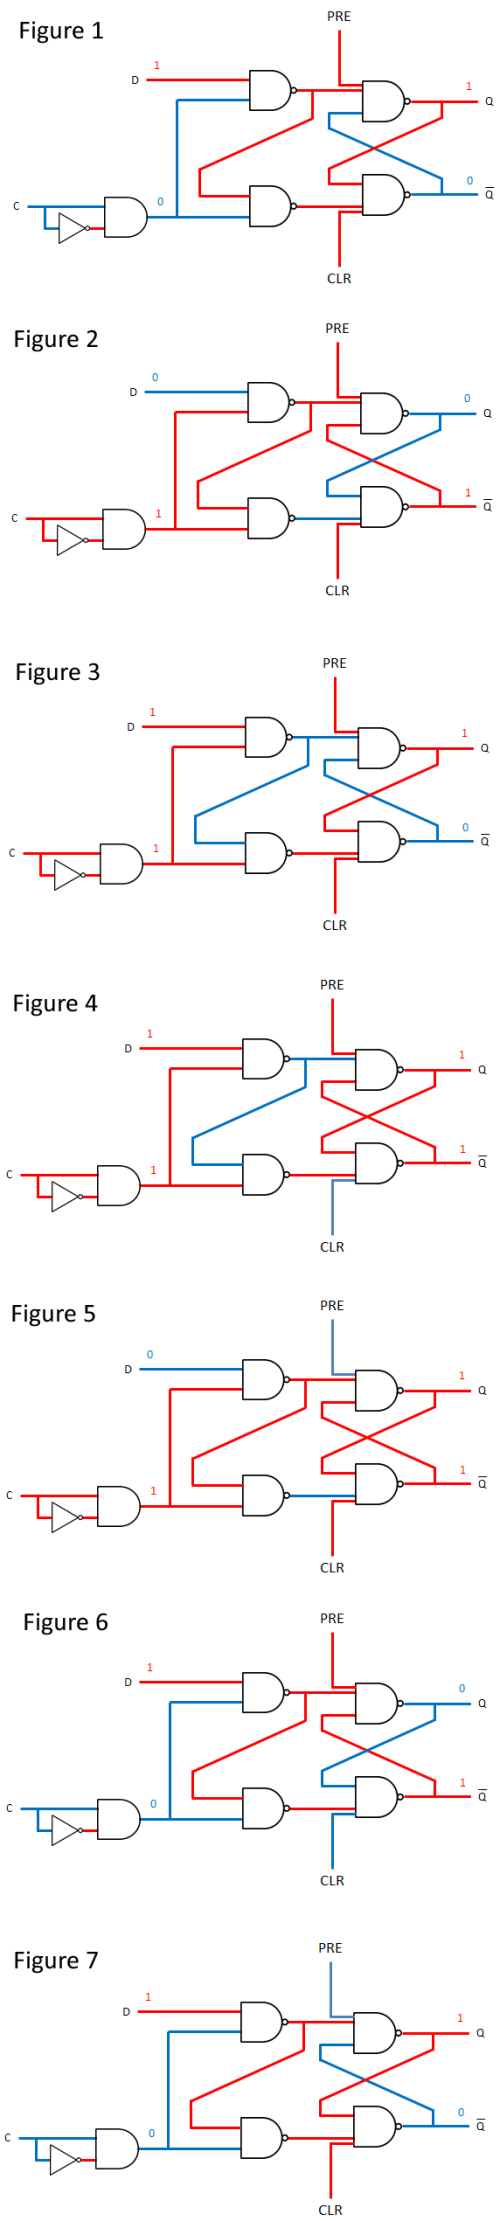 small resolution of enter image description here digital logic circuit analysis integrated circuit flipflop latch